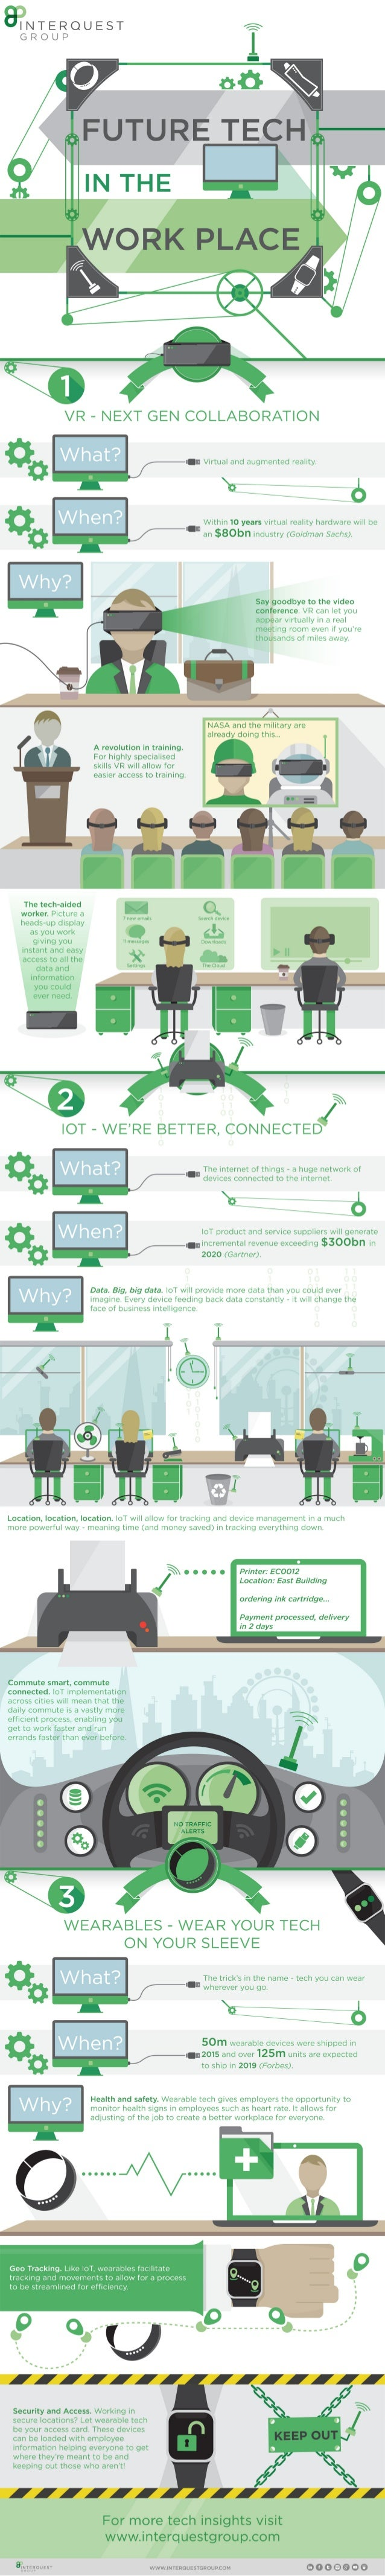 [Infographic] Future Tech In The Workplace